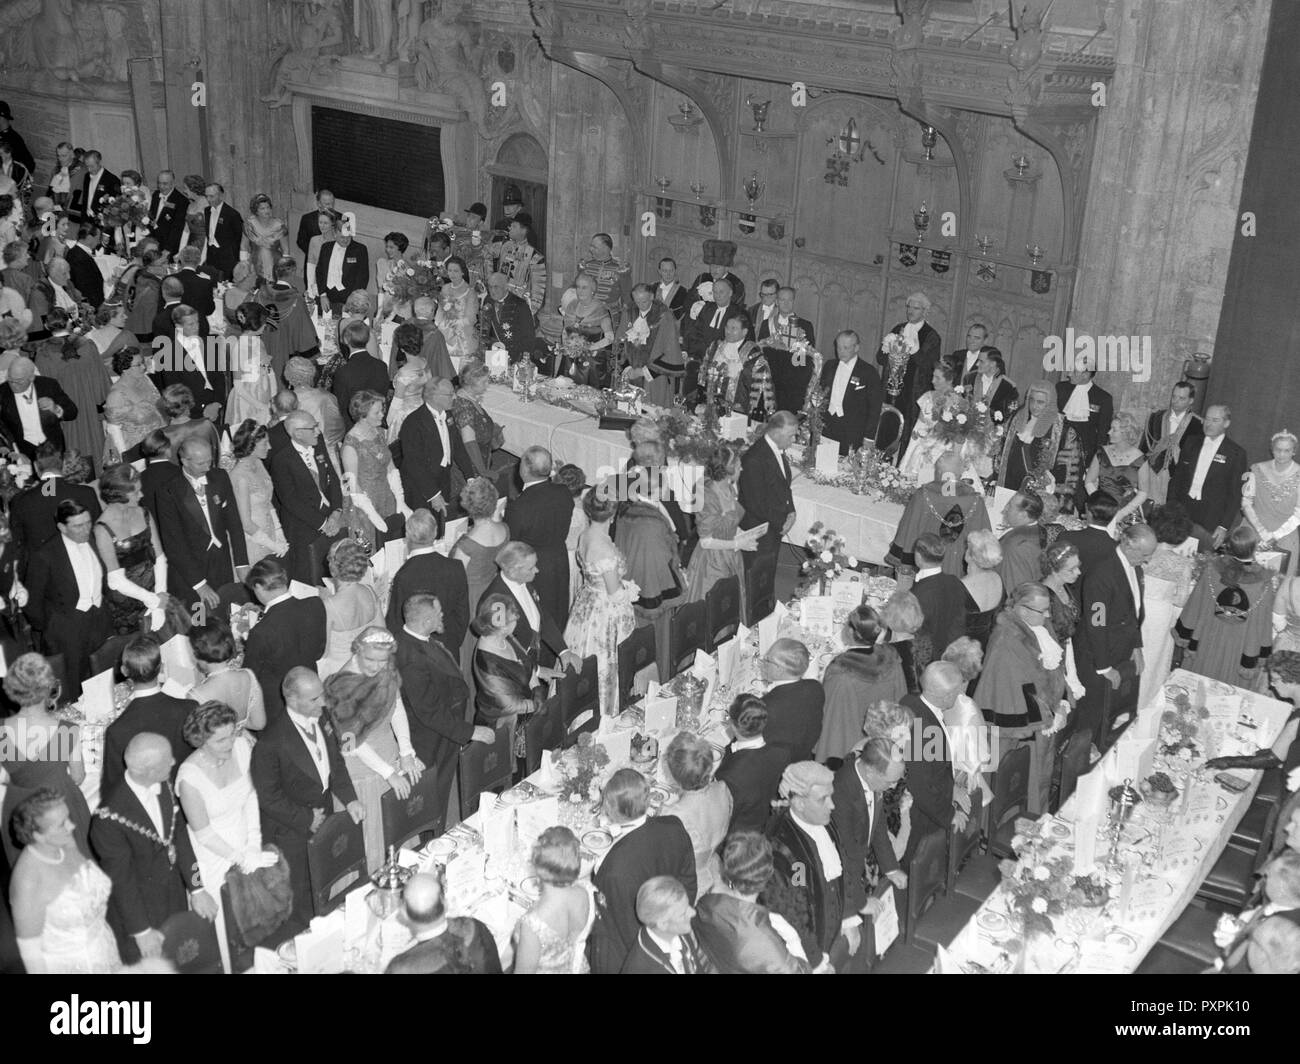 The City of London's Guildhall held the Lord Mayor's Banquet. Here inside the Guildhall showing the top table (from L-R) is Dr. Fisher, the Archbishop of Canterbury, Lady Dorothy Macmillan, wife of the Prime Minister, Sir Edmund Stockade, last year's Lord Mayor, Sir Bernard Waley-Cohen, the new Lord Mayor of London, Harold Macmillan, the Prime Minister, Lady Waley-Cohen, wife of the new Lord Mayor, and Viscount Kilmuir, the Lord Chancellor. - Stock Image